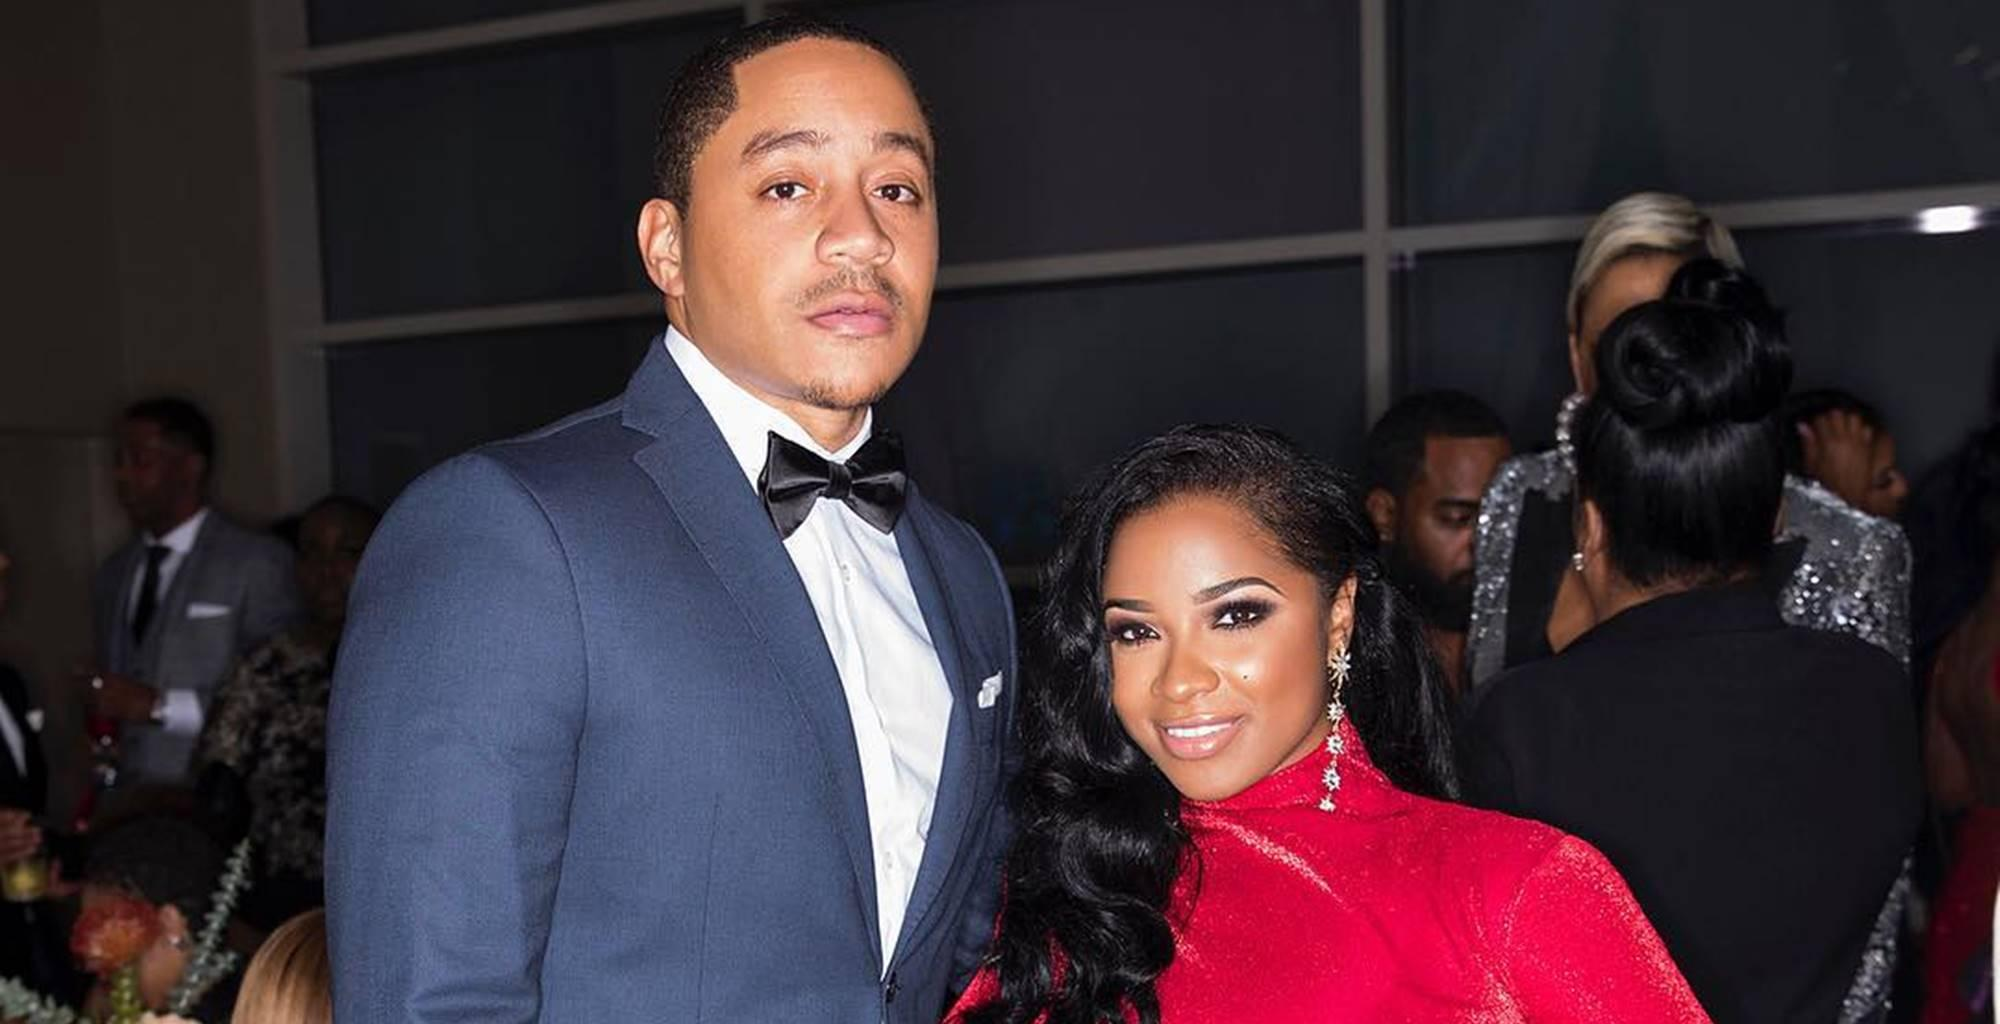 Toya Wright's Fans Are Praying That She And Robert Rushing Get Married One Day: 'She Deserves It'